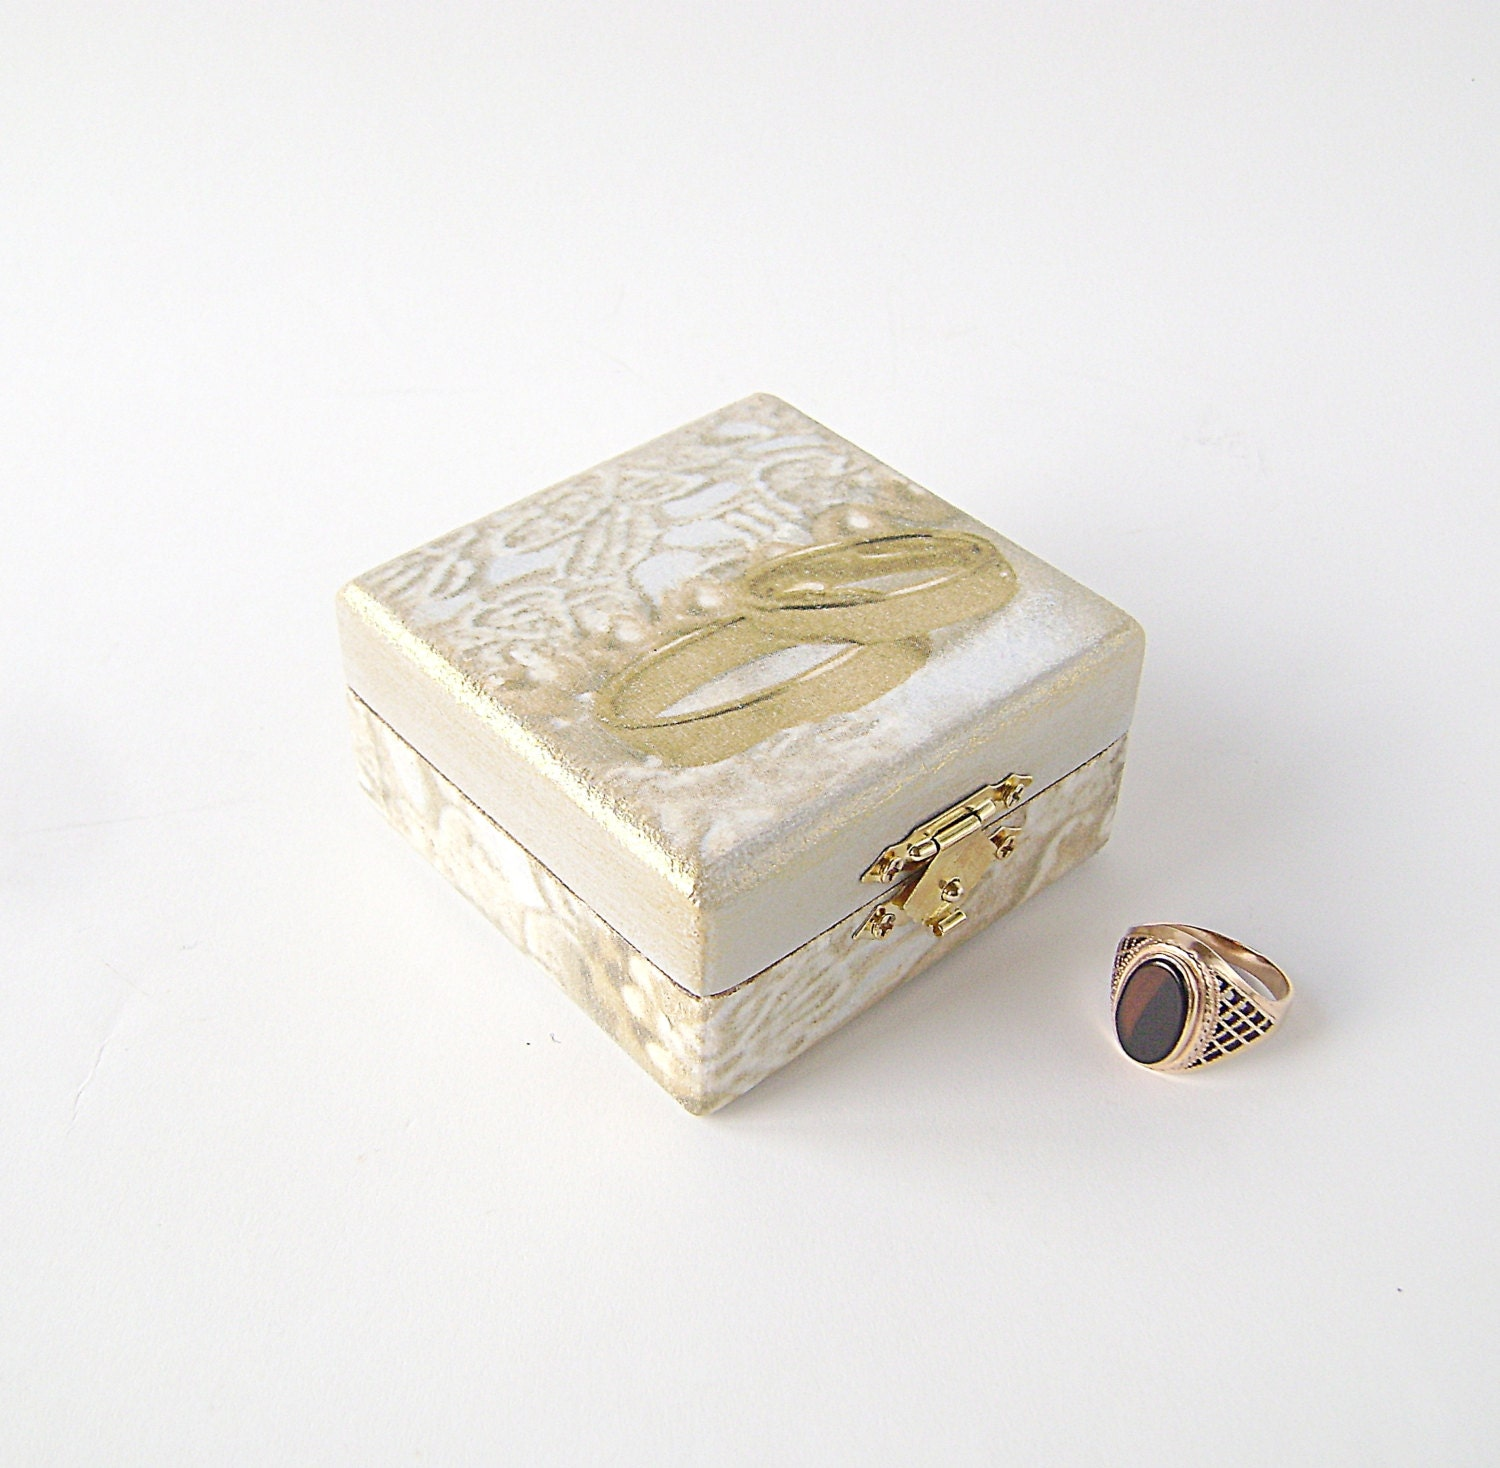 Grey Gold Ring Bearer Box , Wedding box, Treasure Box , Jewelry box , vintage style box, proposal ring box, wedding ring - NataliaDecor